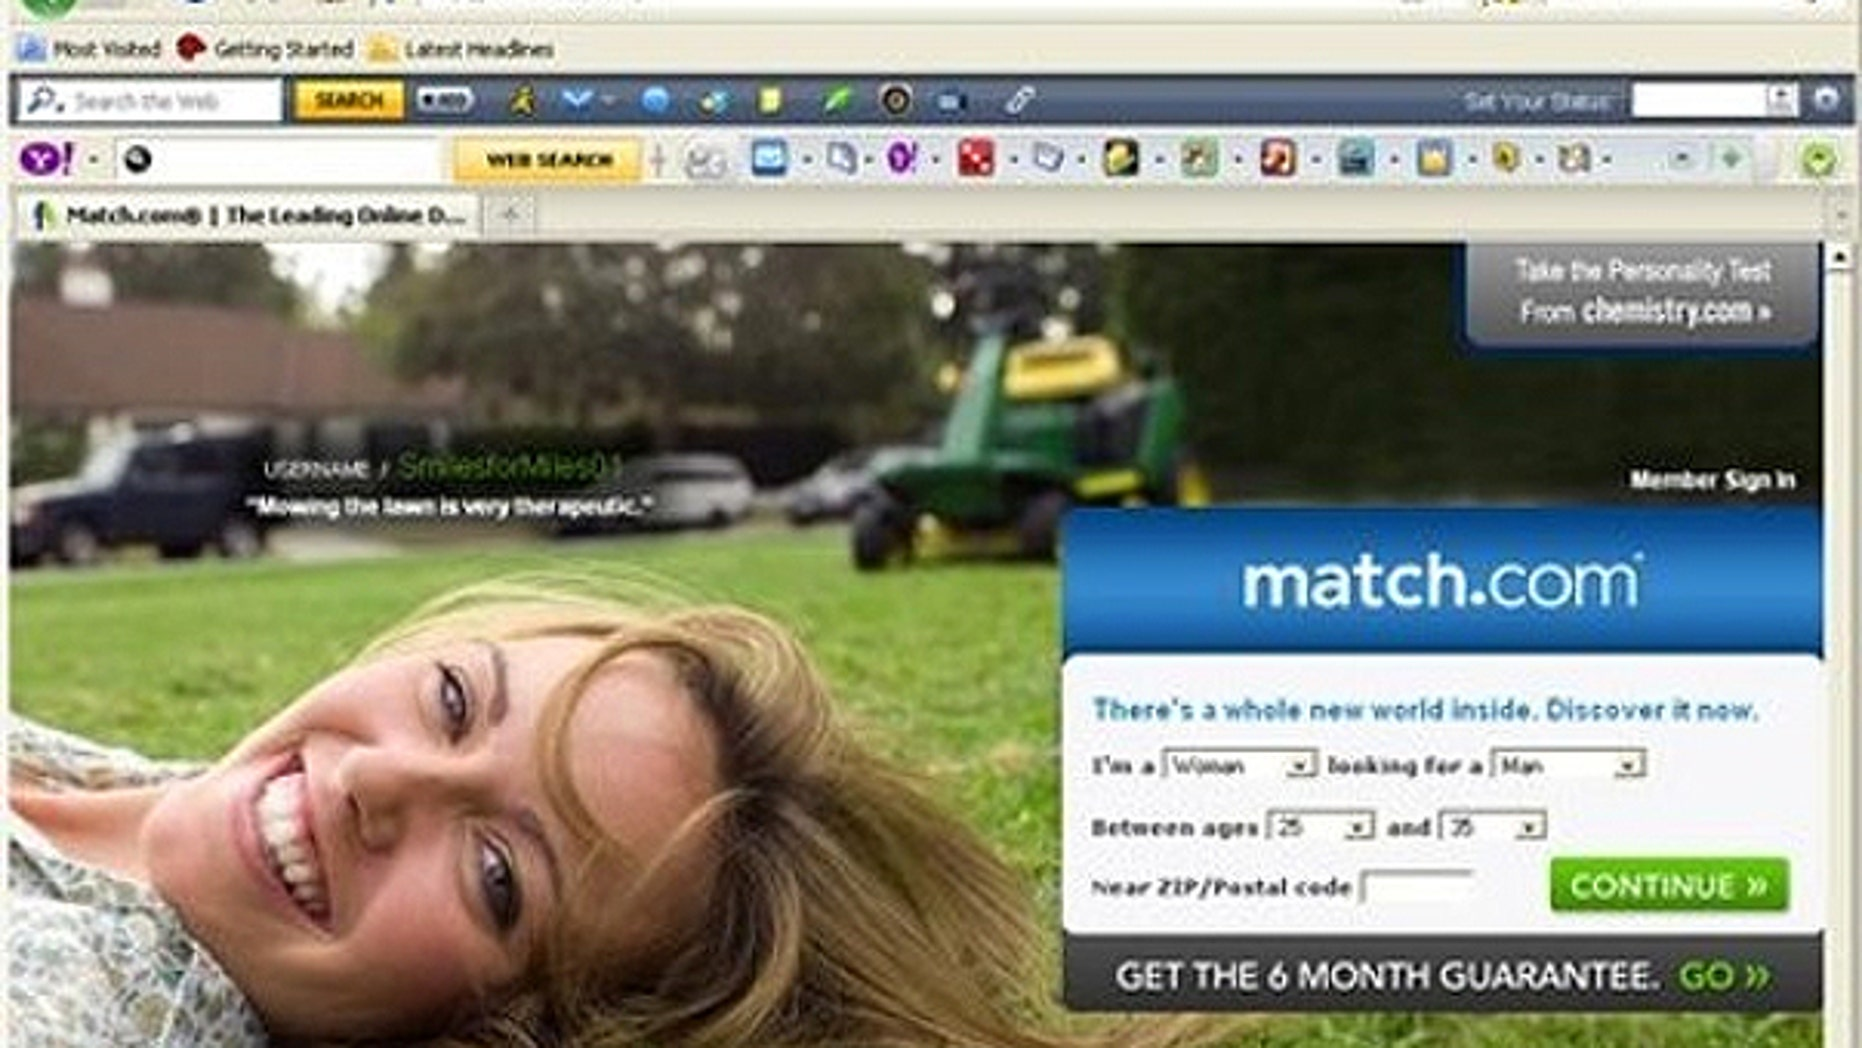 March 24: In this screen shot, the match.com home page is shown.